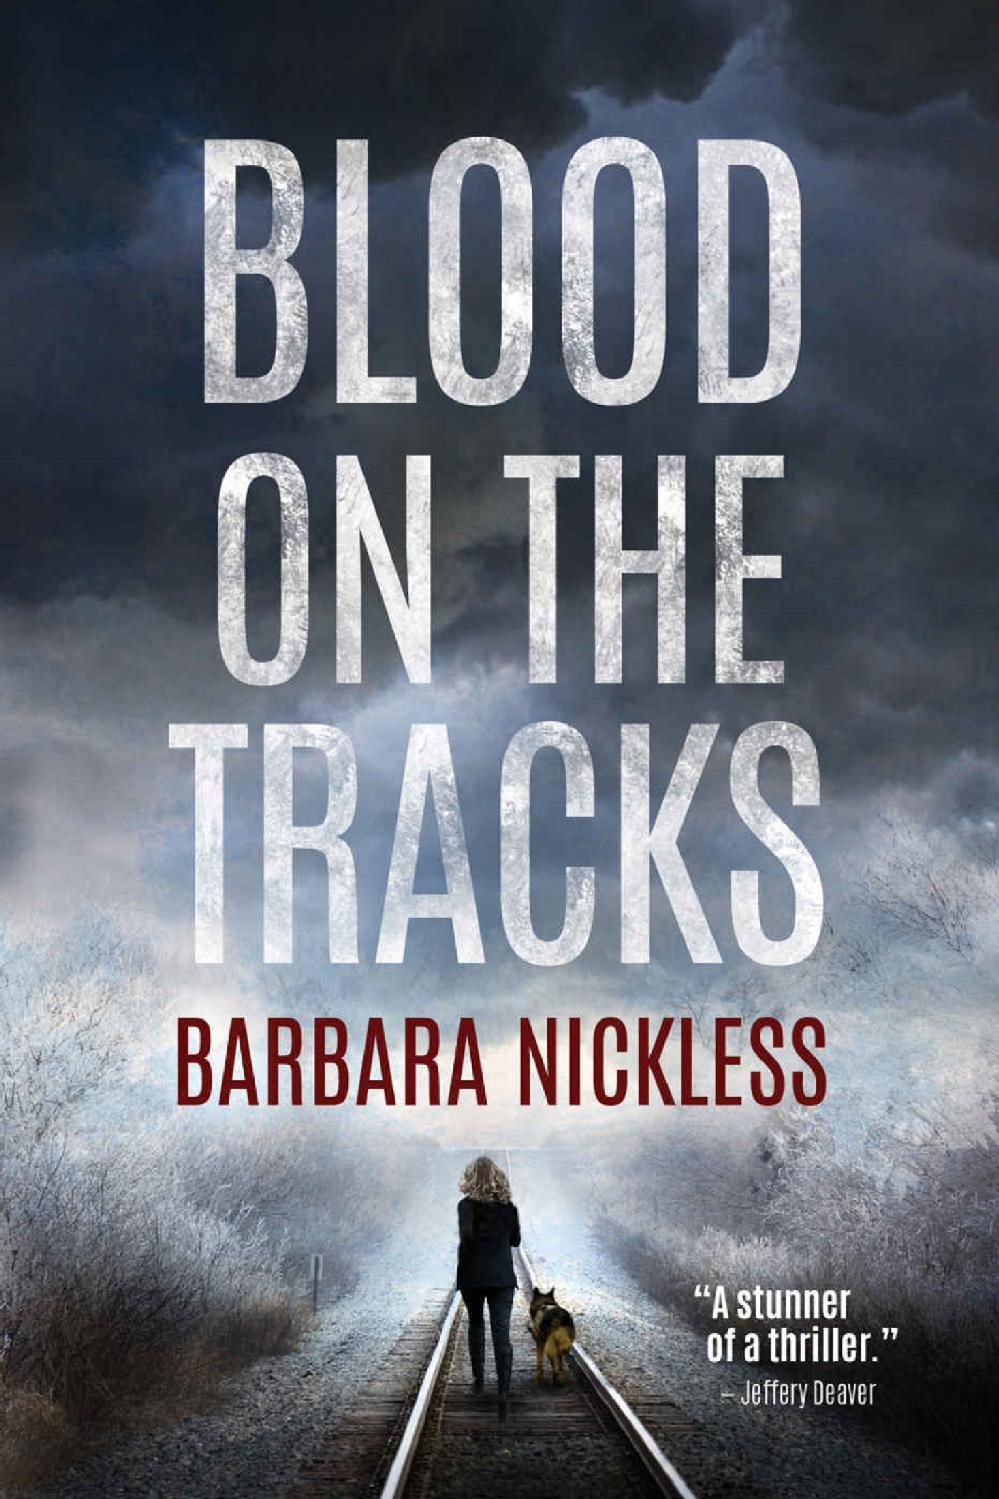 Blood on the Tracks - Barbara Nickless [kindle] [mobi]